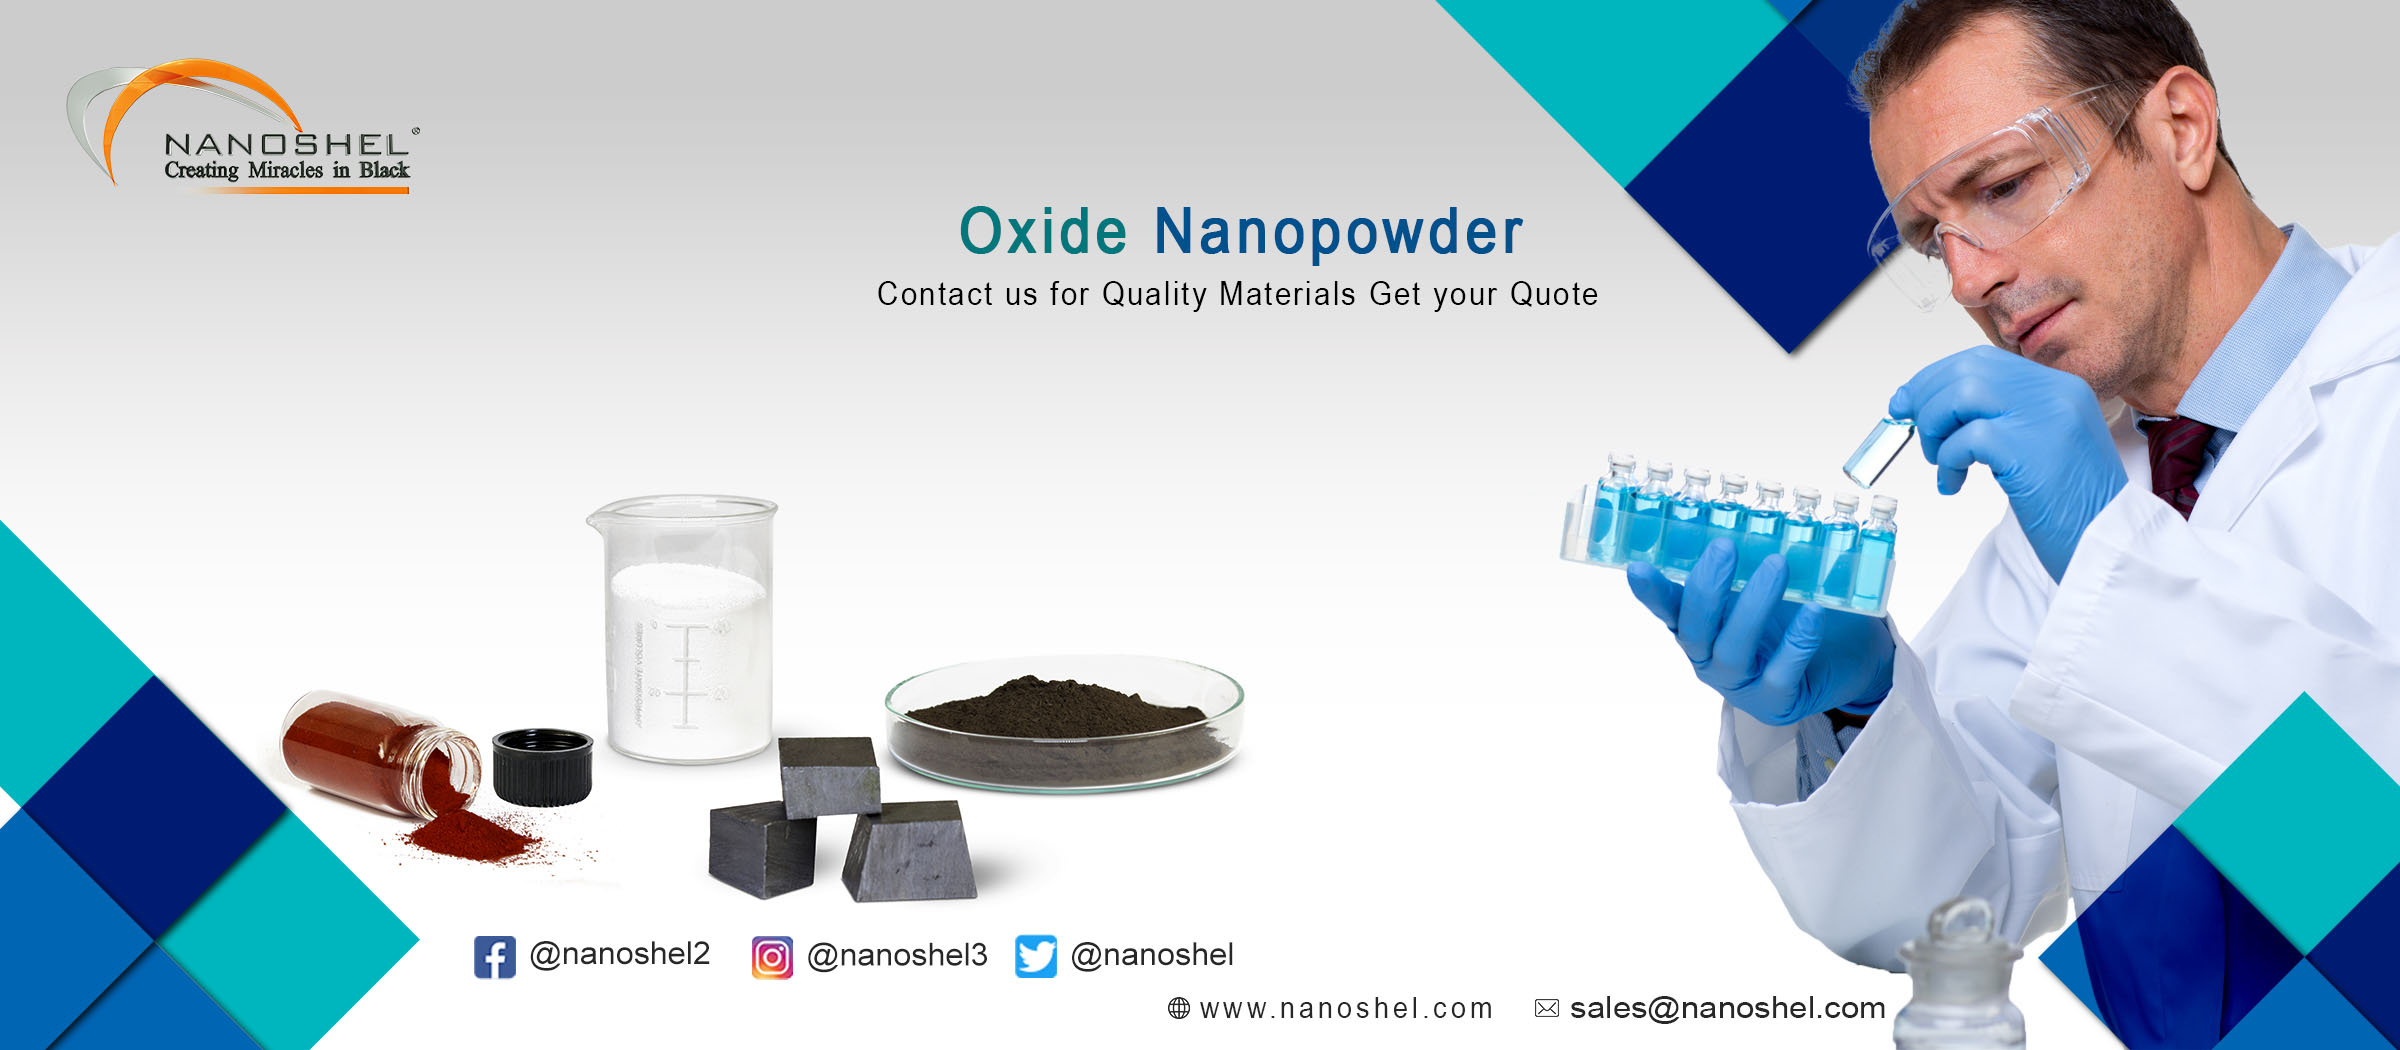 Chromium Oxide Nanoparticles